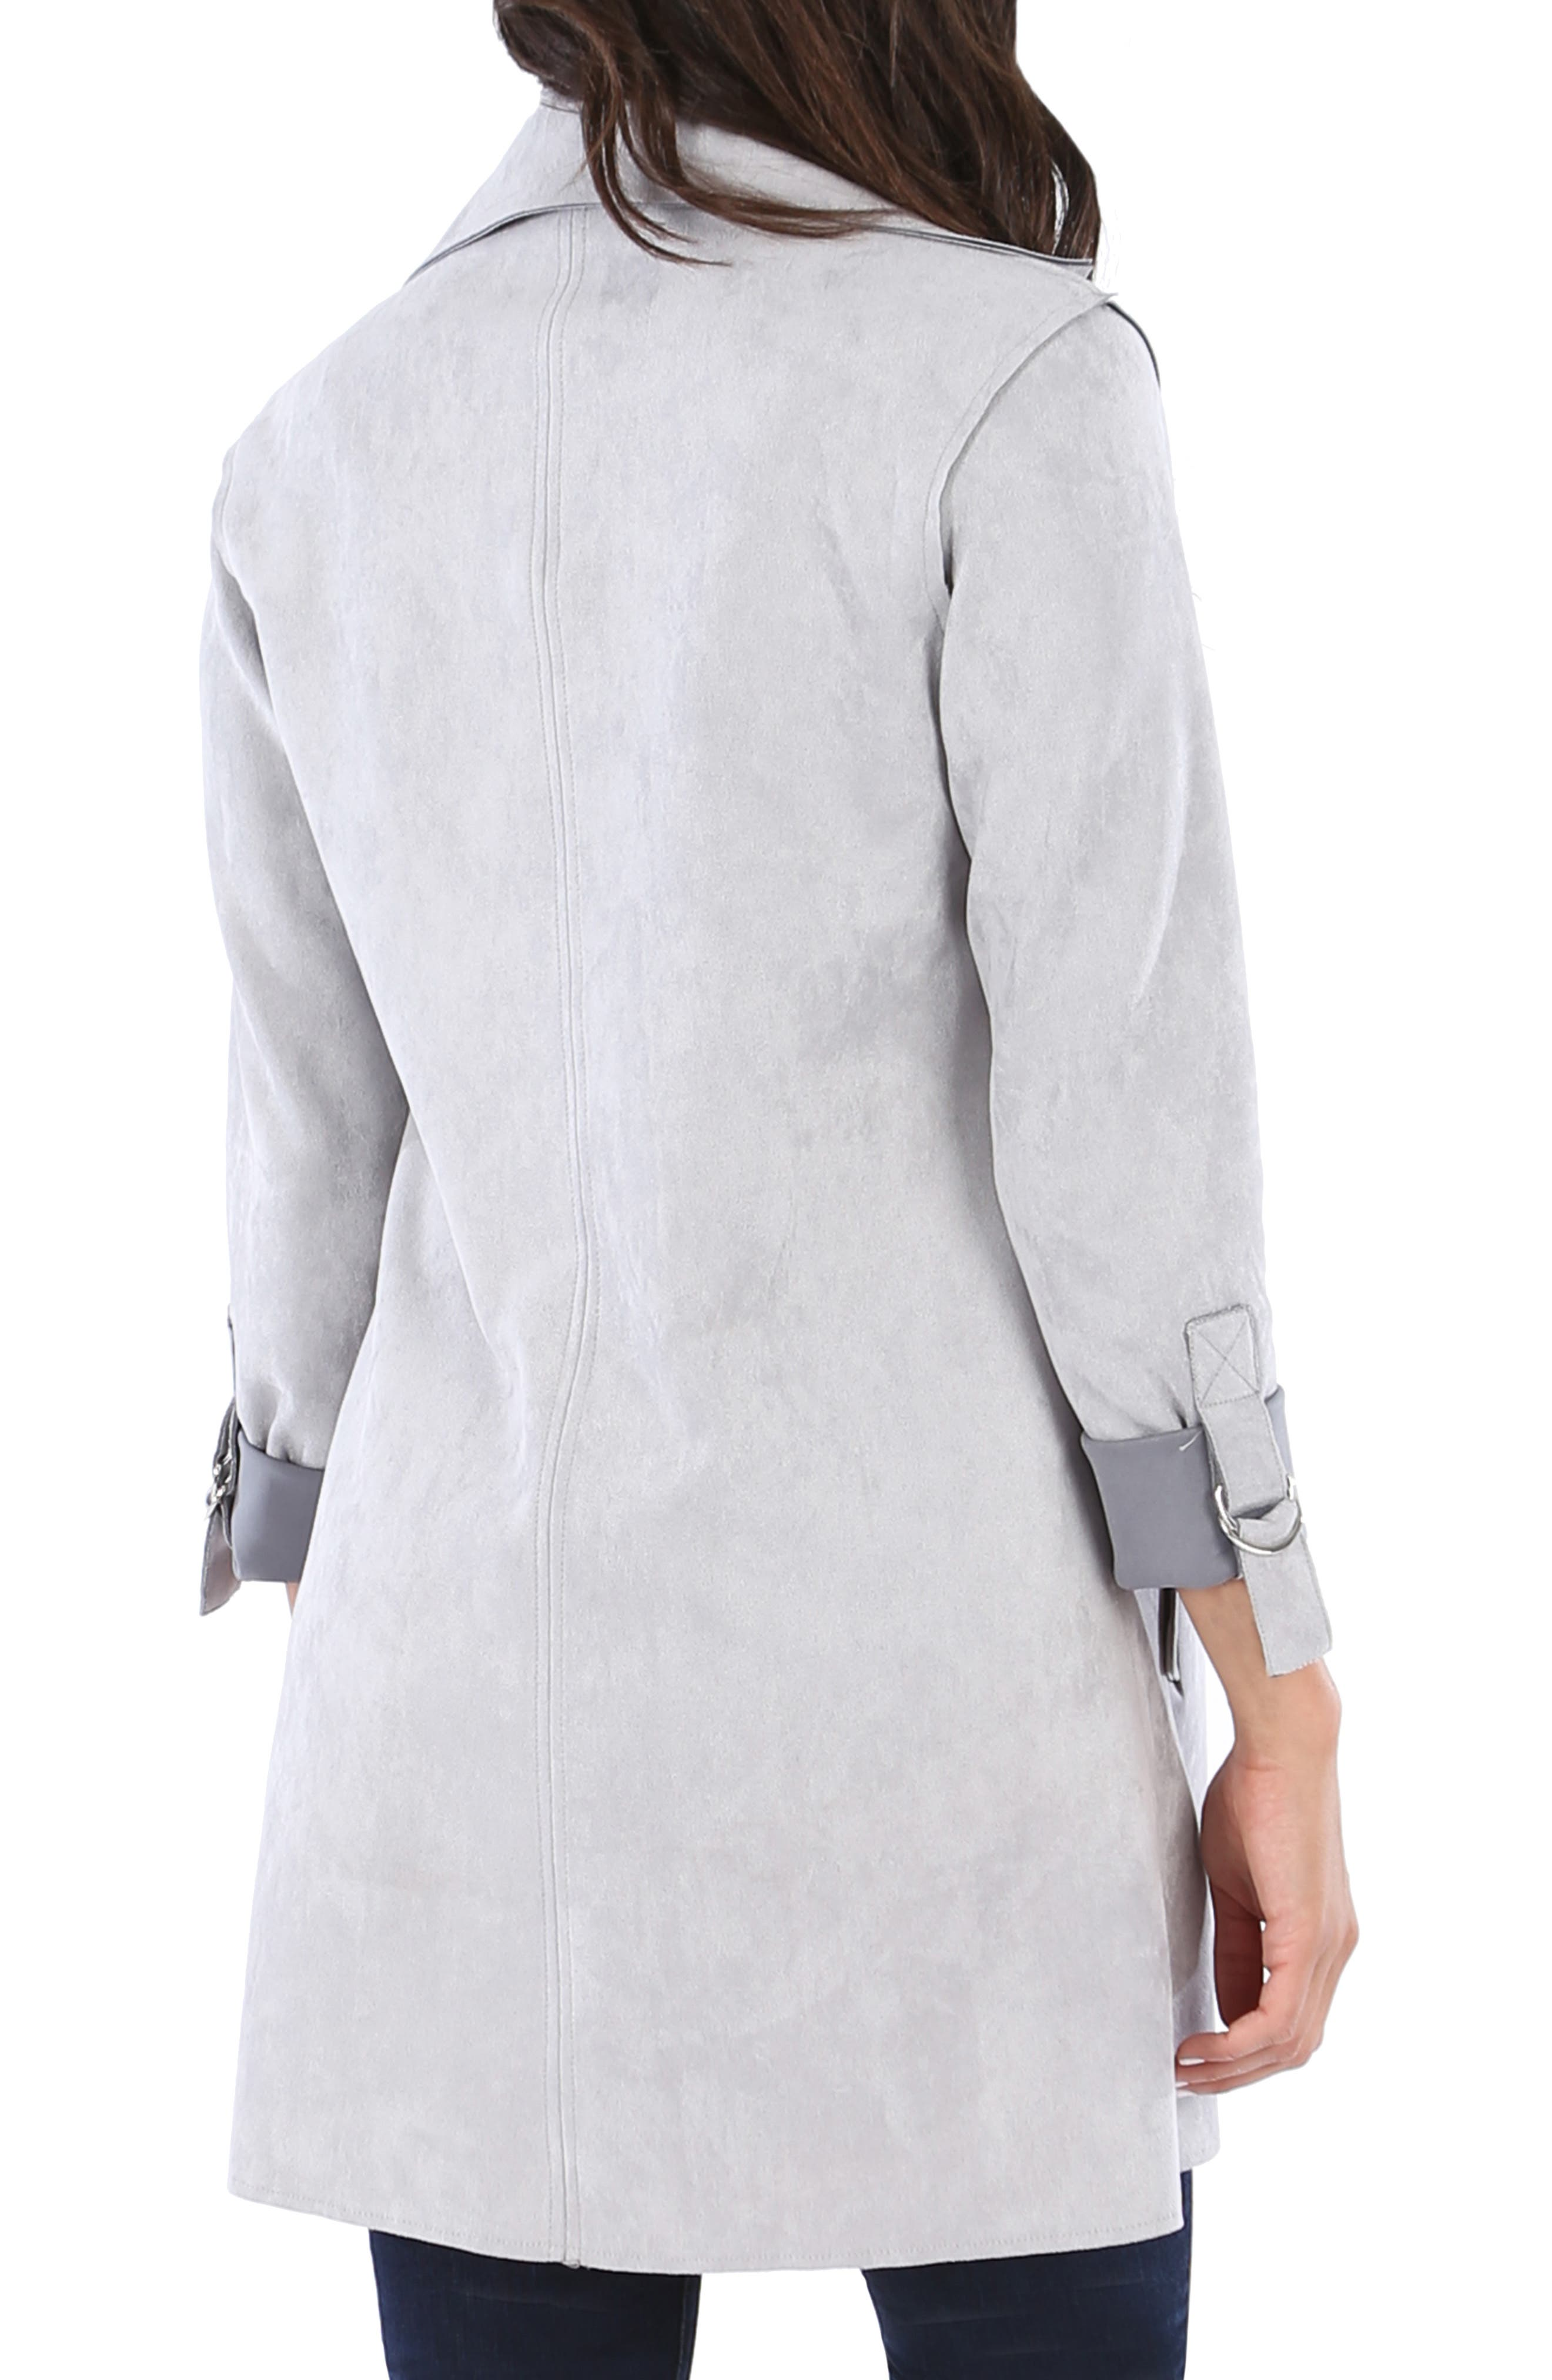 KUT FROM THE KLOTH,                             Faye Long Jacket,                             Alternate thumbnail 2, color,                             SILVER